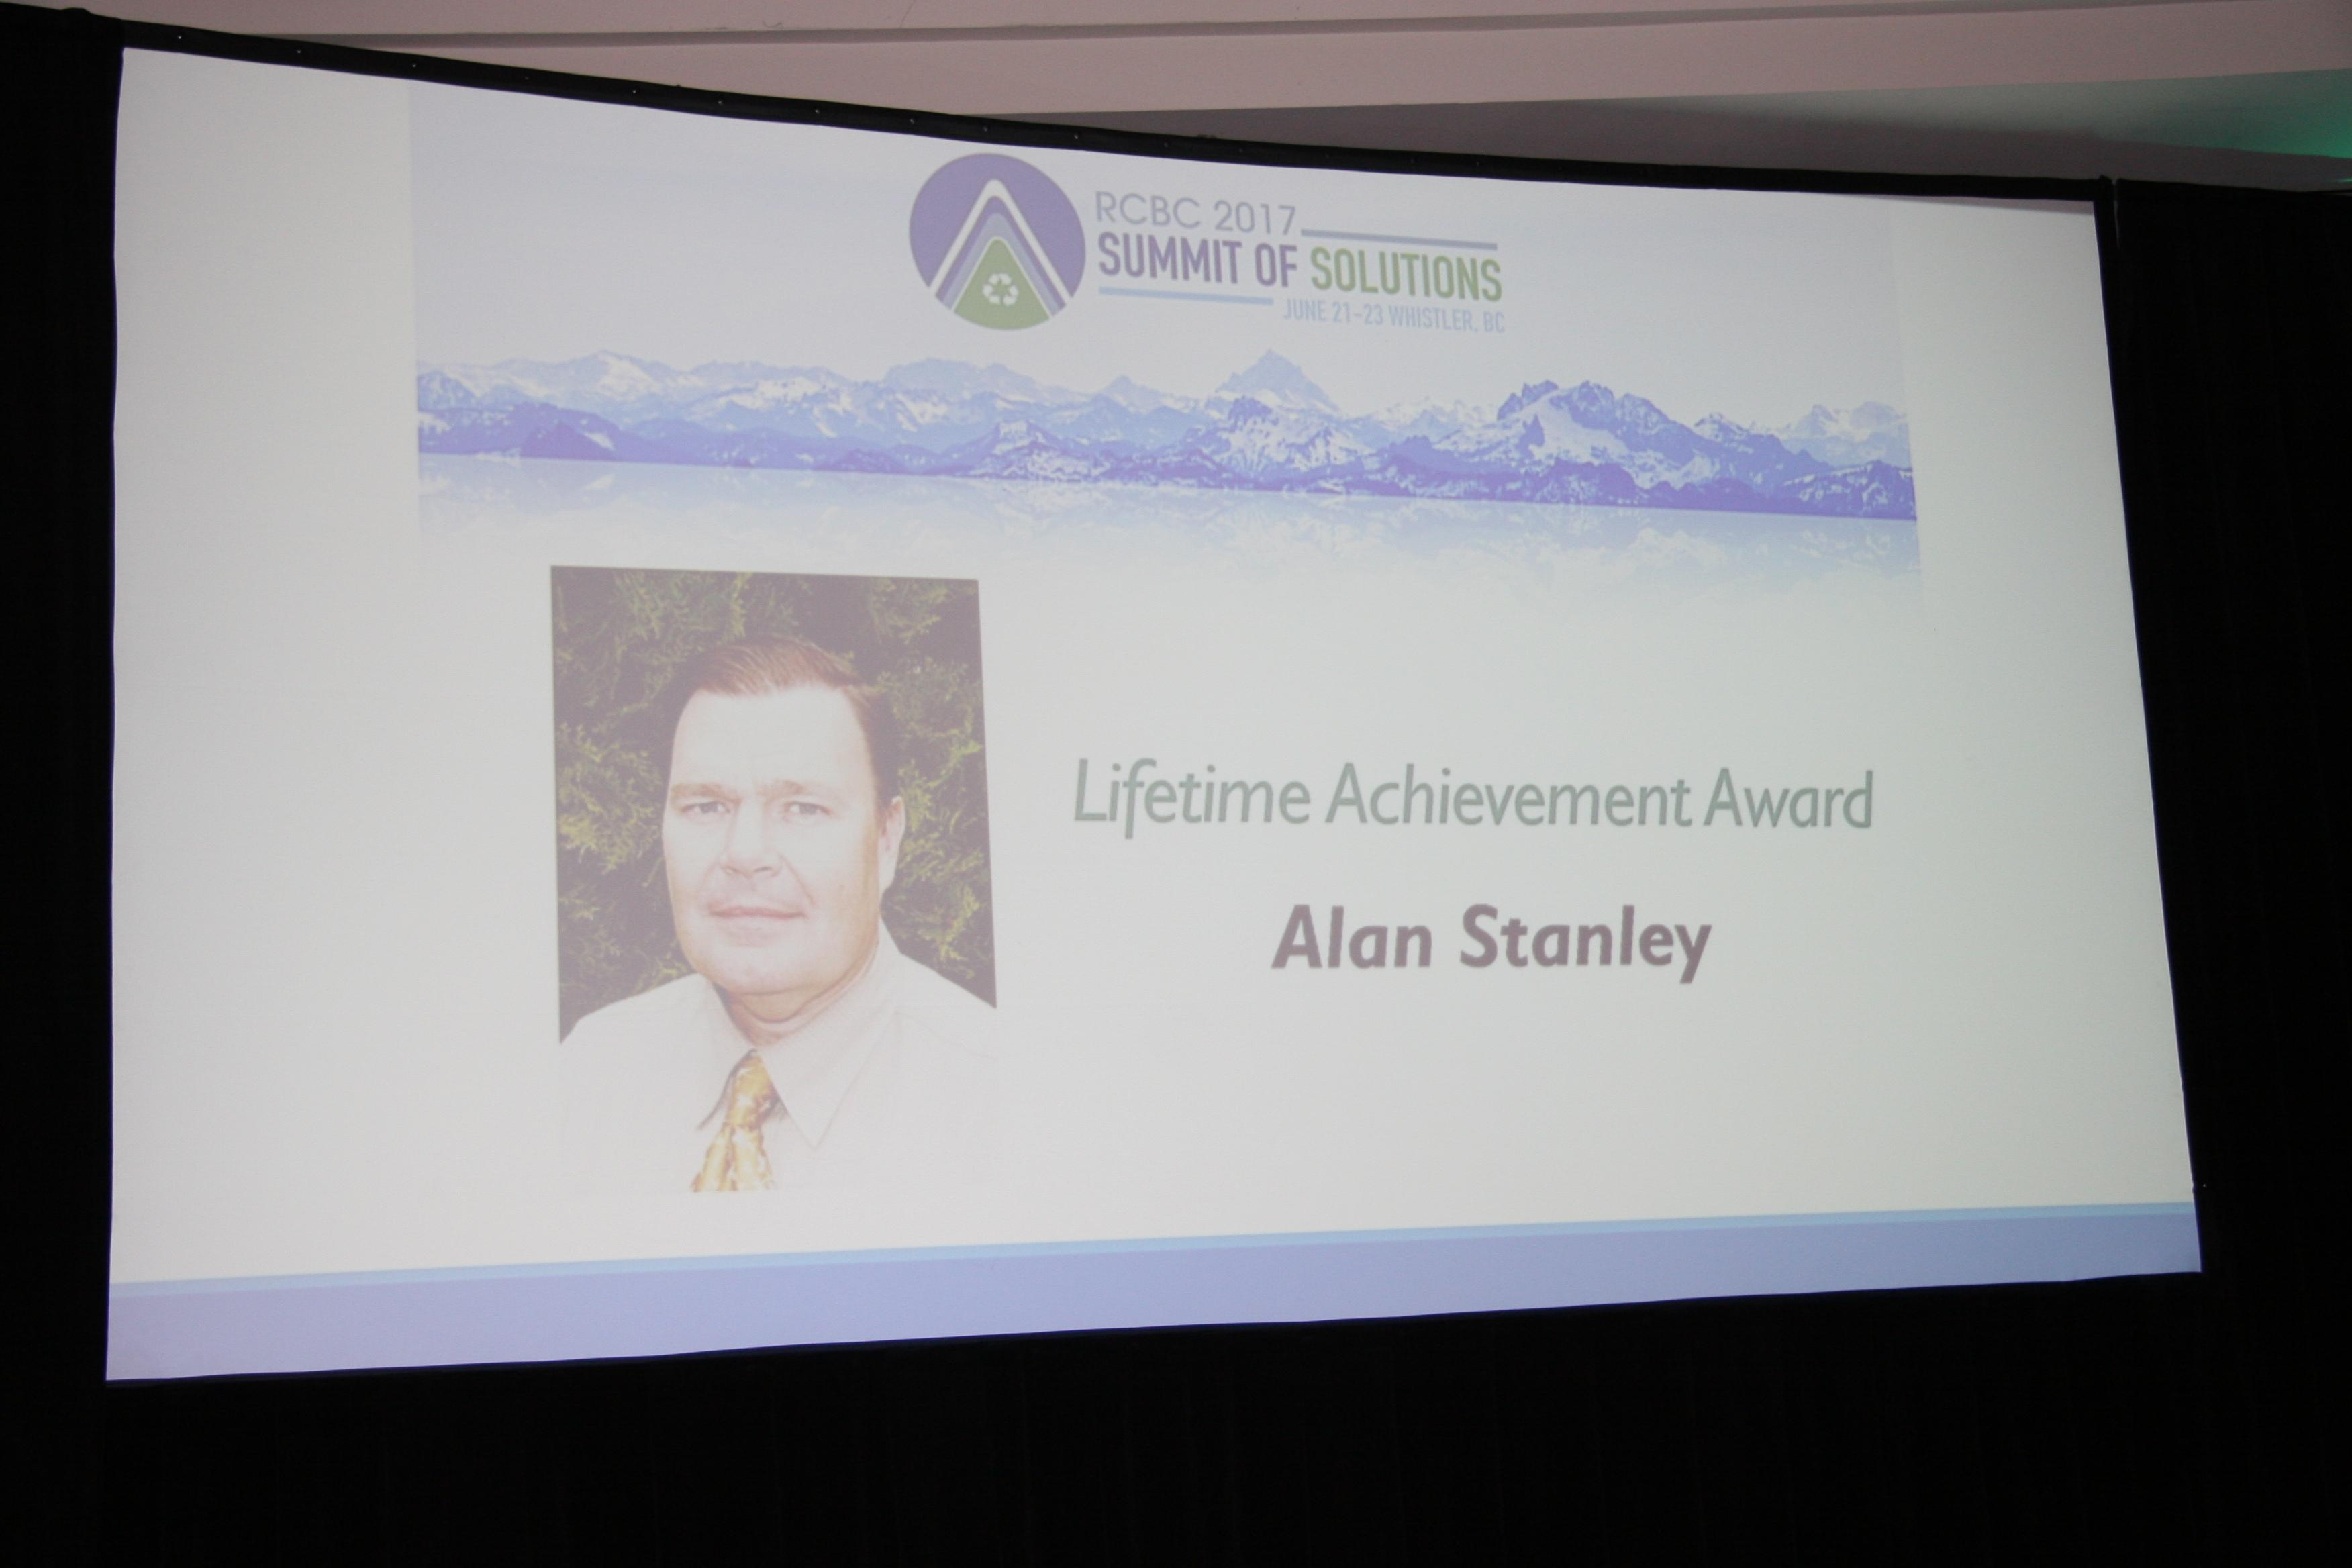 Lifetime Achievement winner Alan Stanley slide